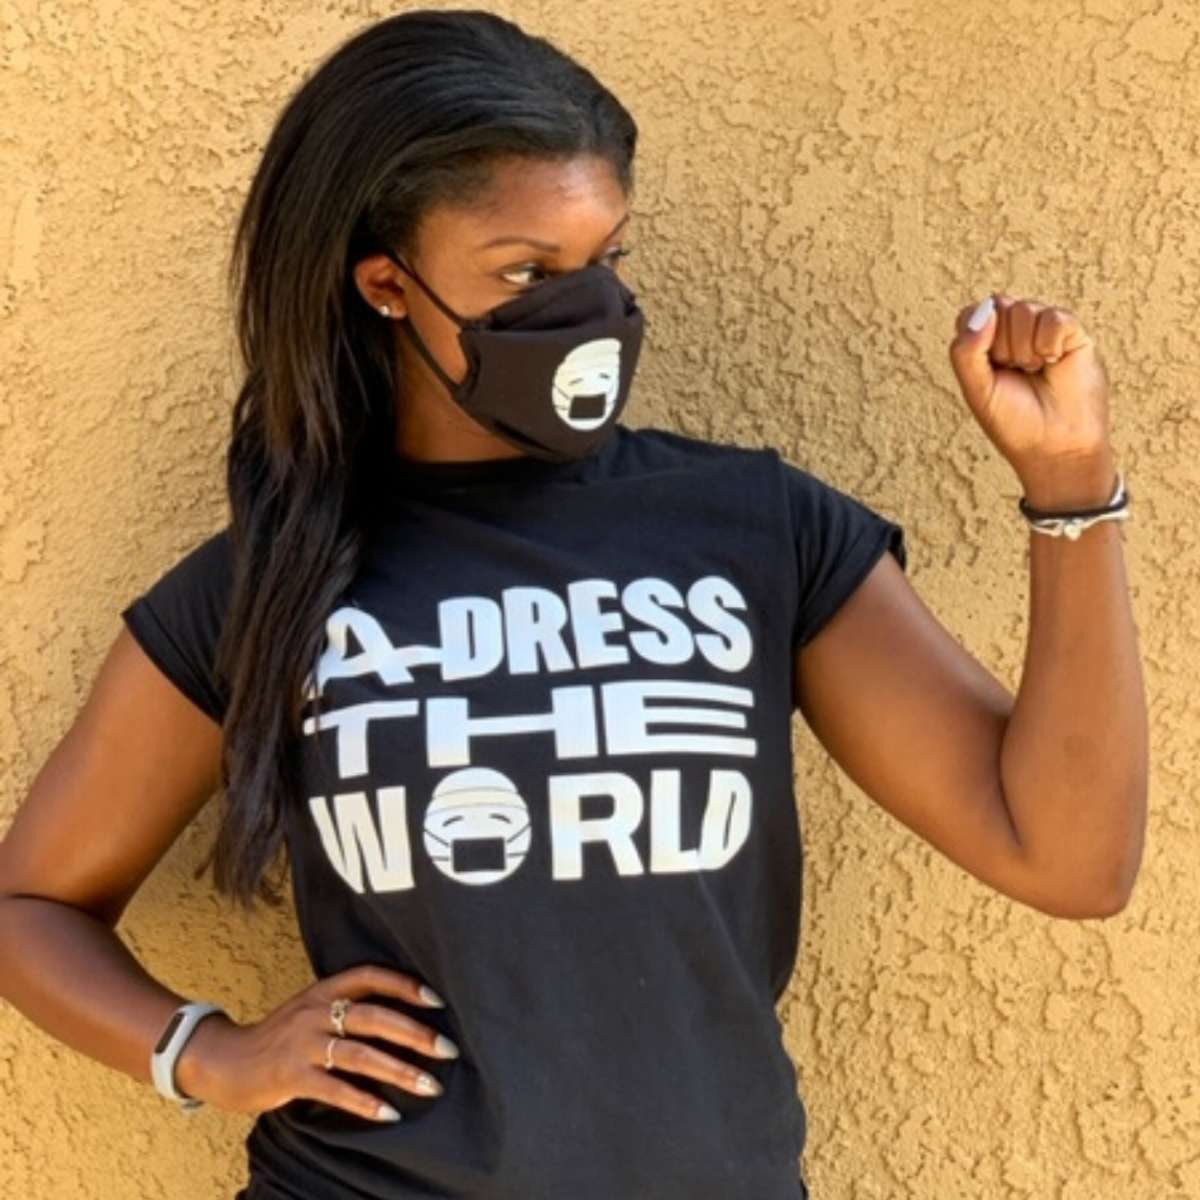 Check out this amazing socially conscious gear by Thread Haus